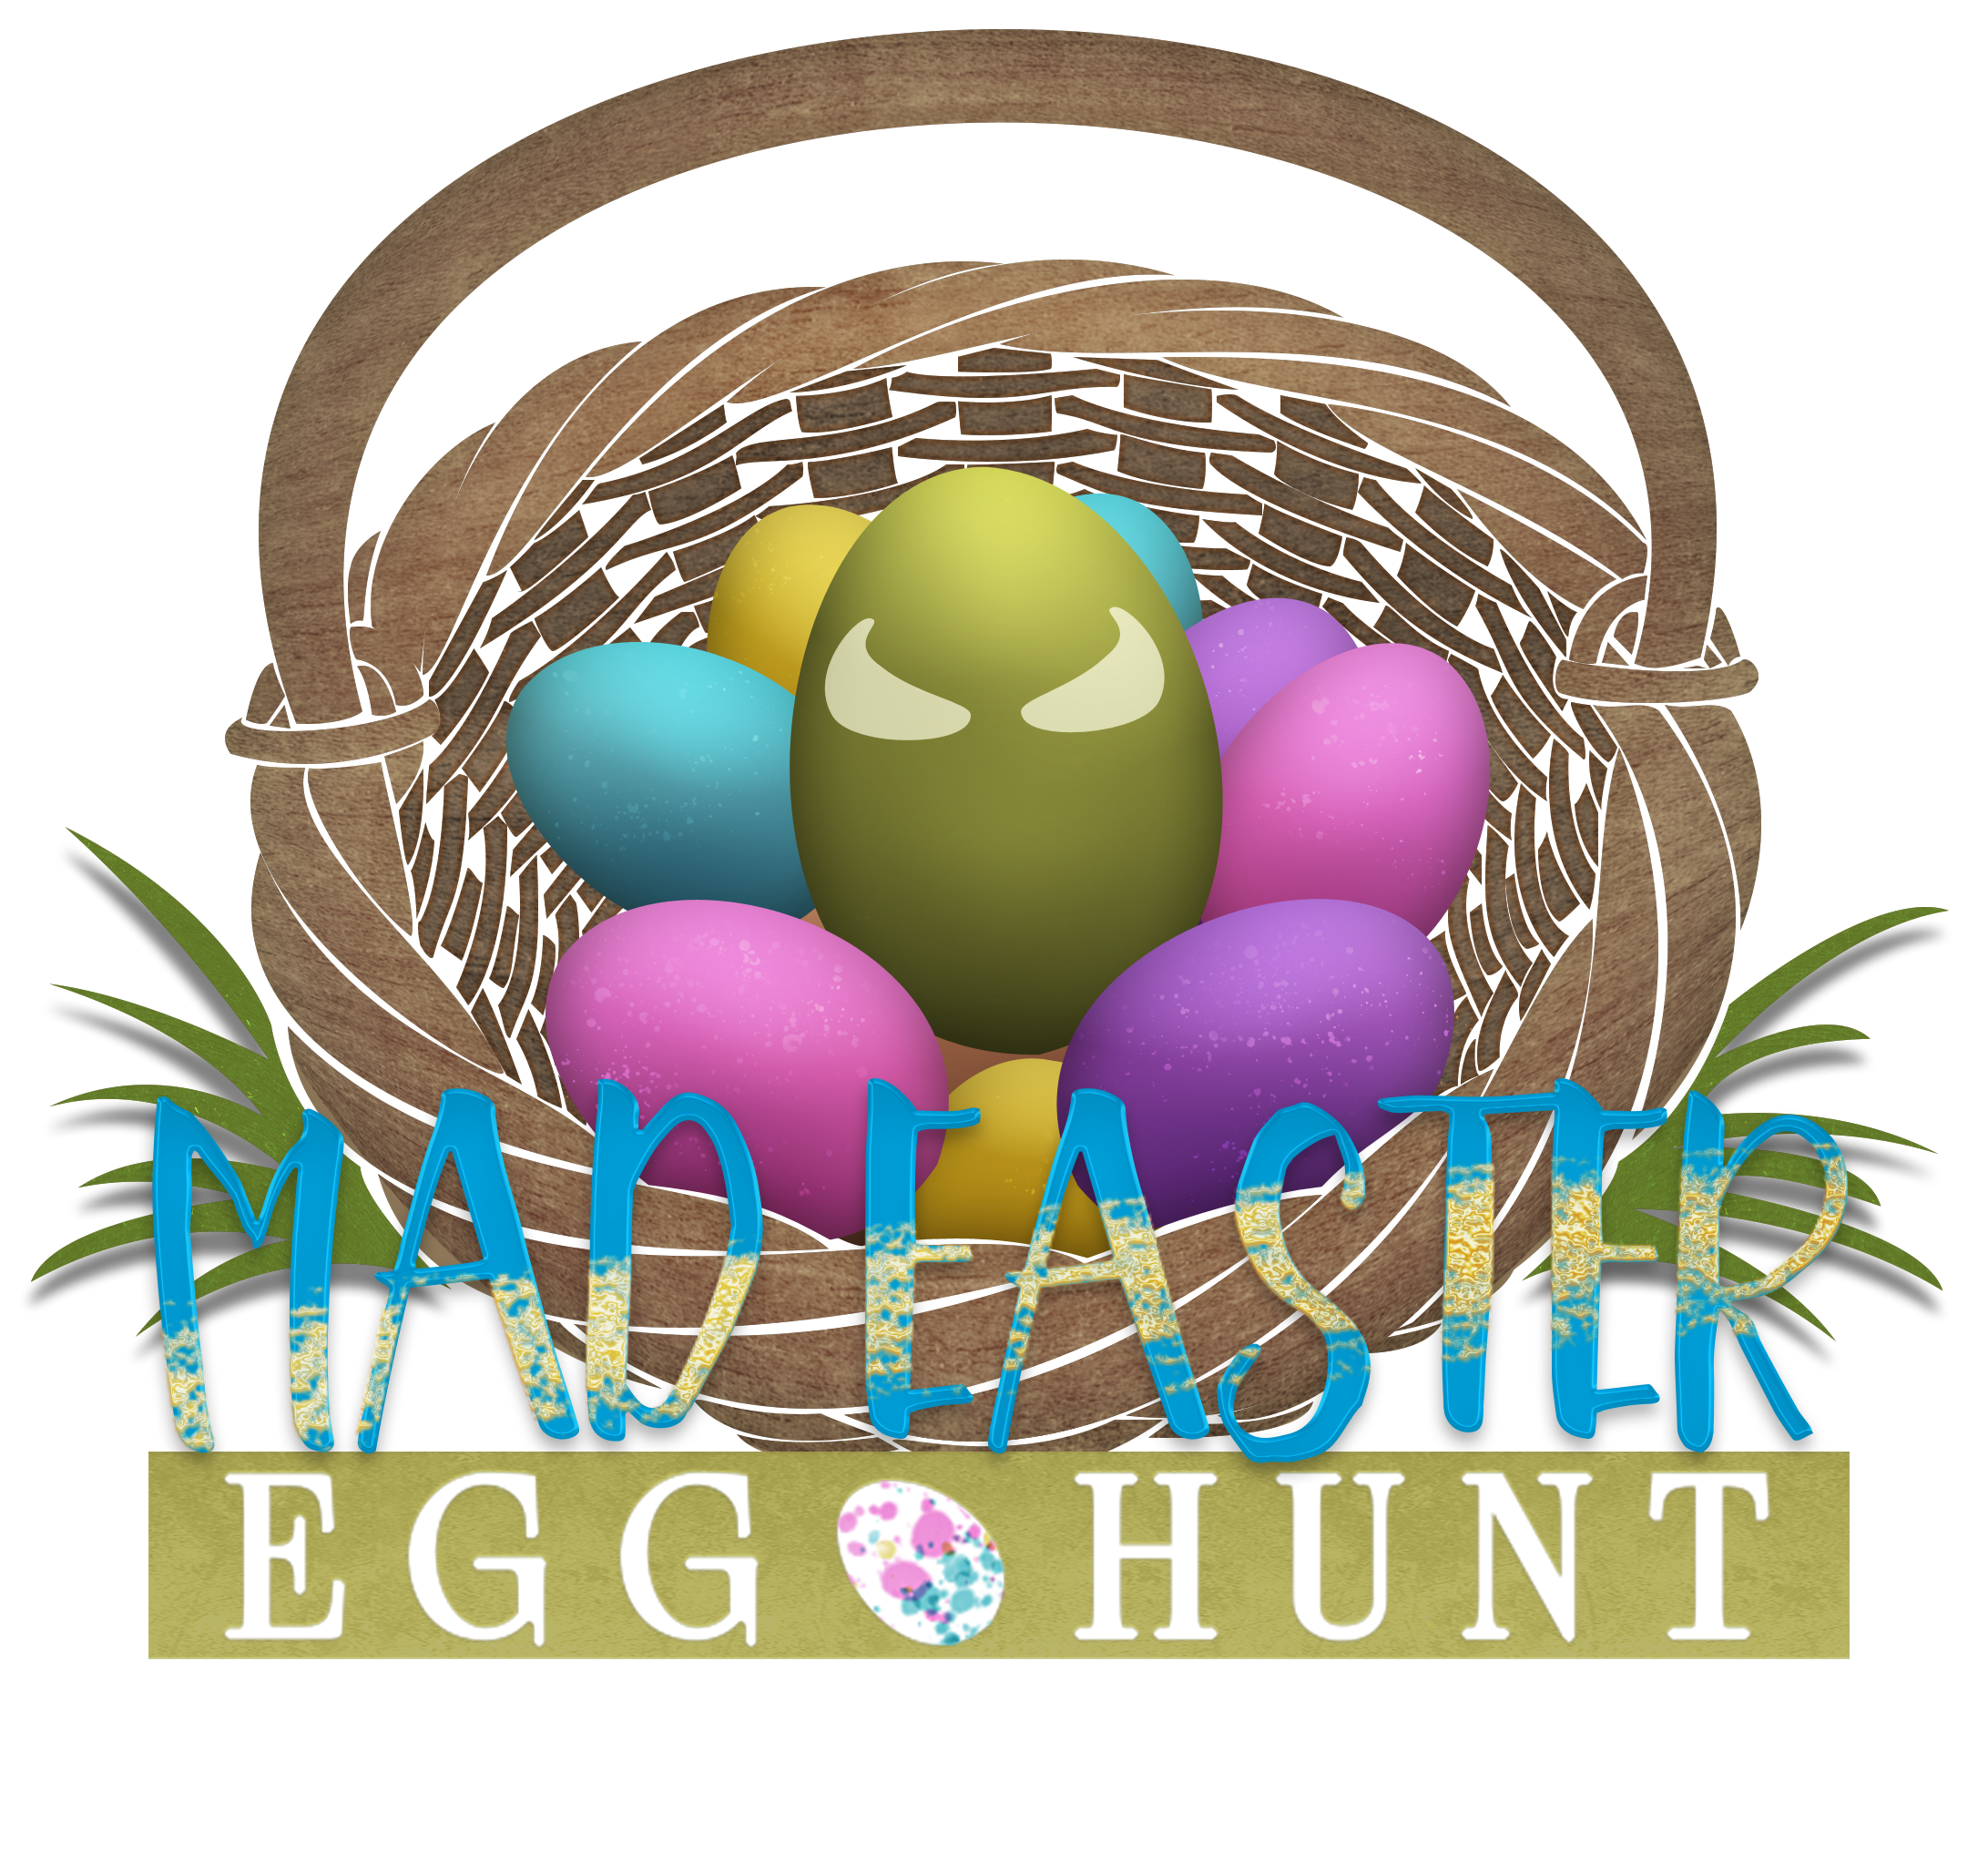 Eggs-treme Egg Hunters!